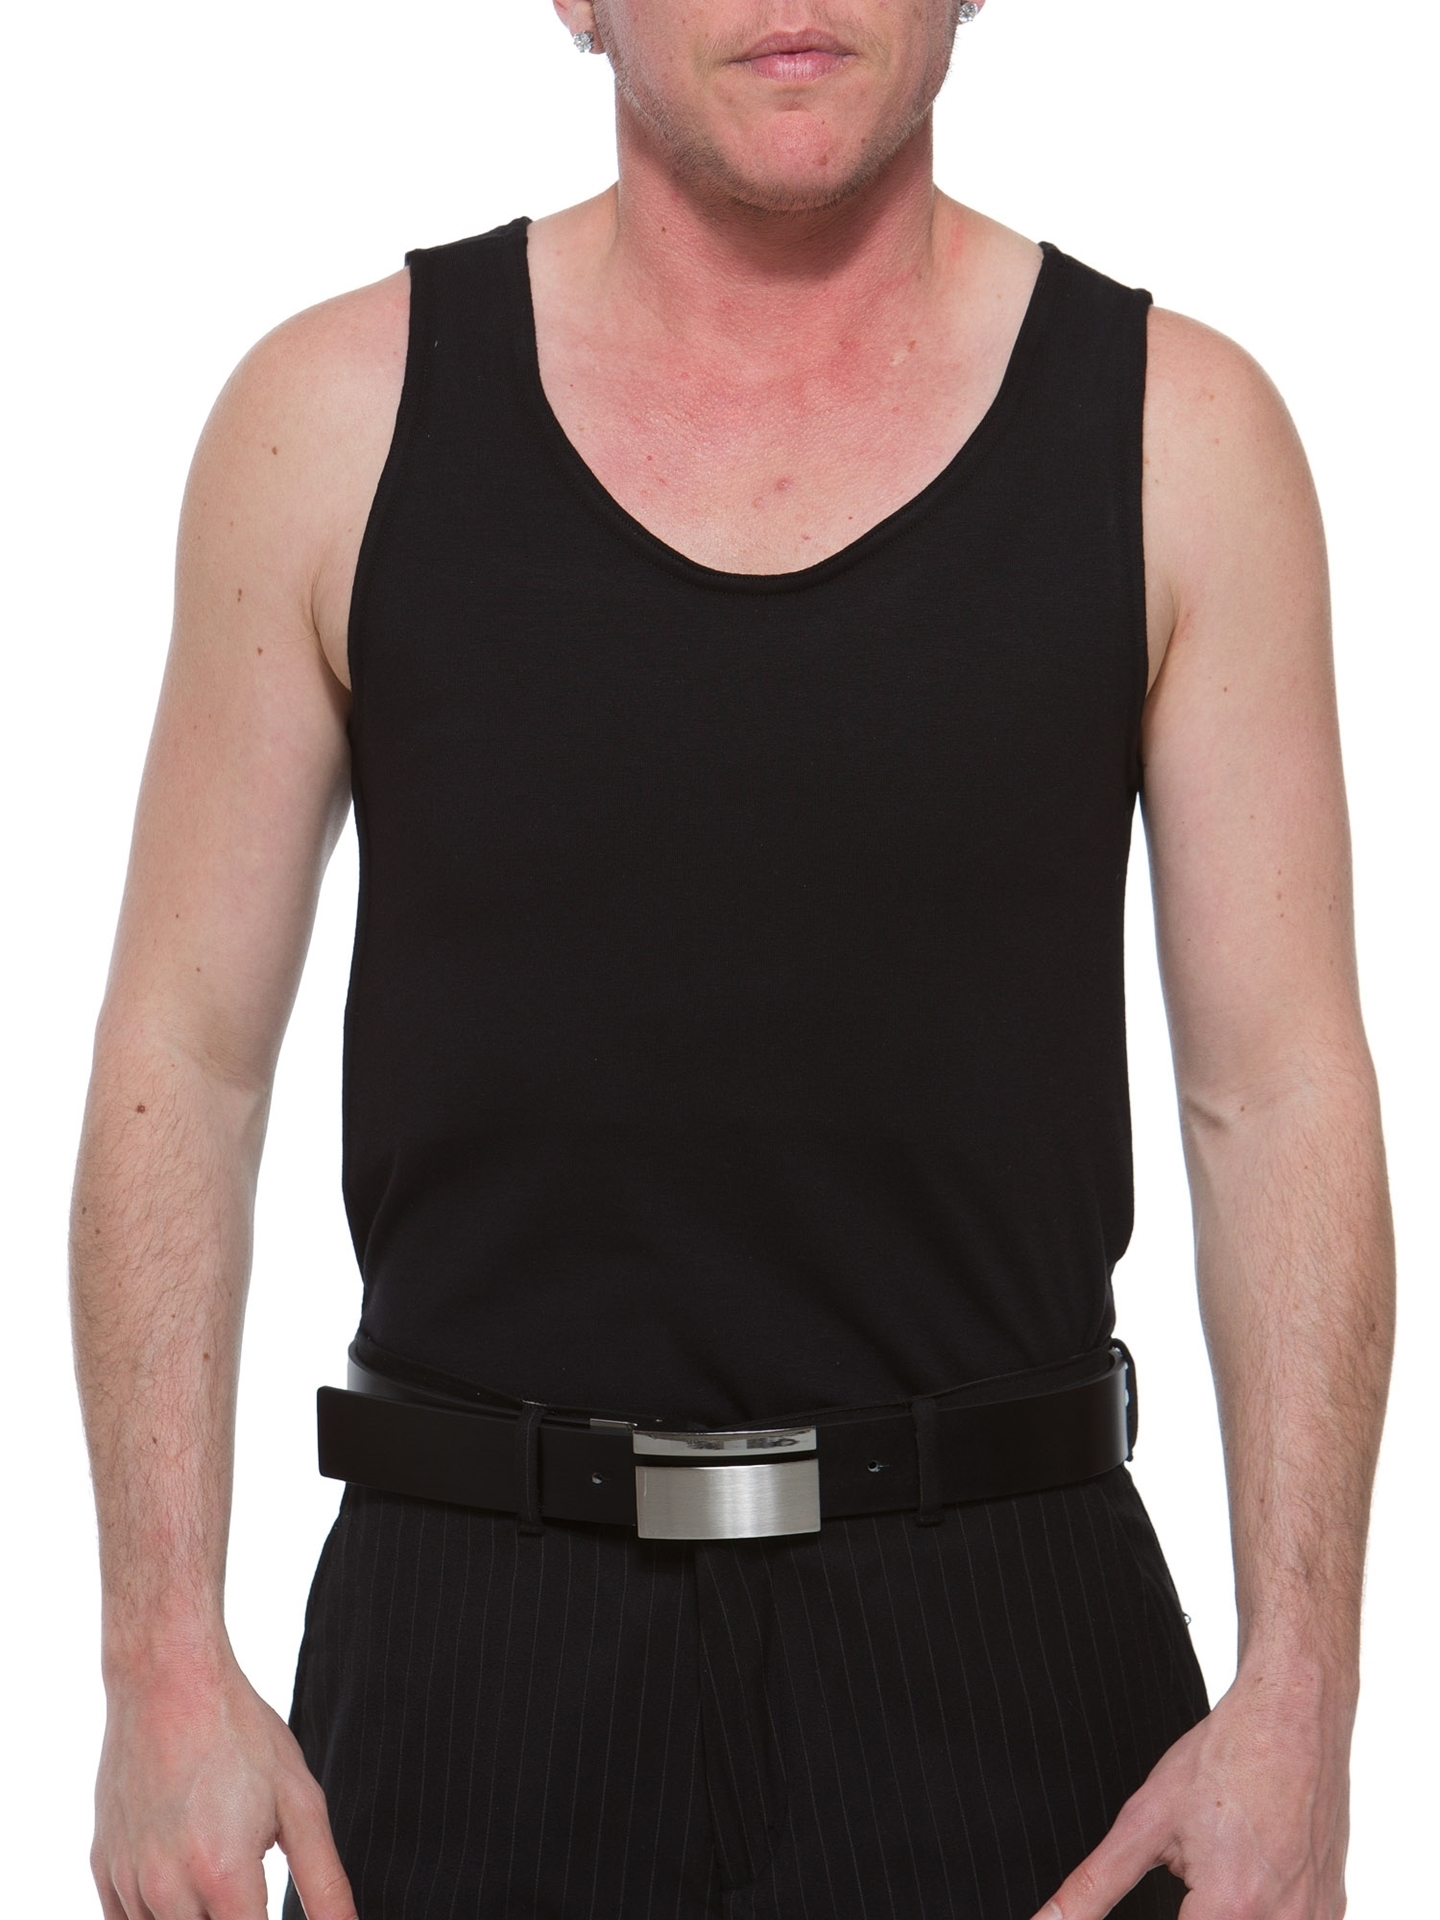 breast binder for trans men